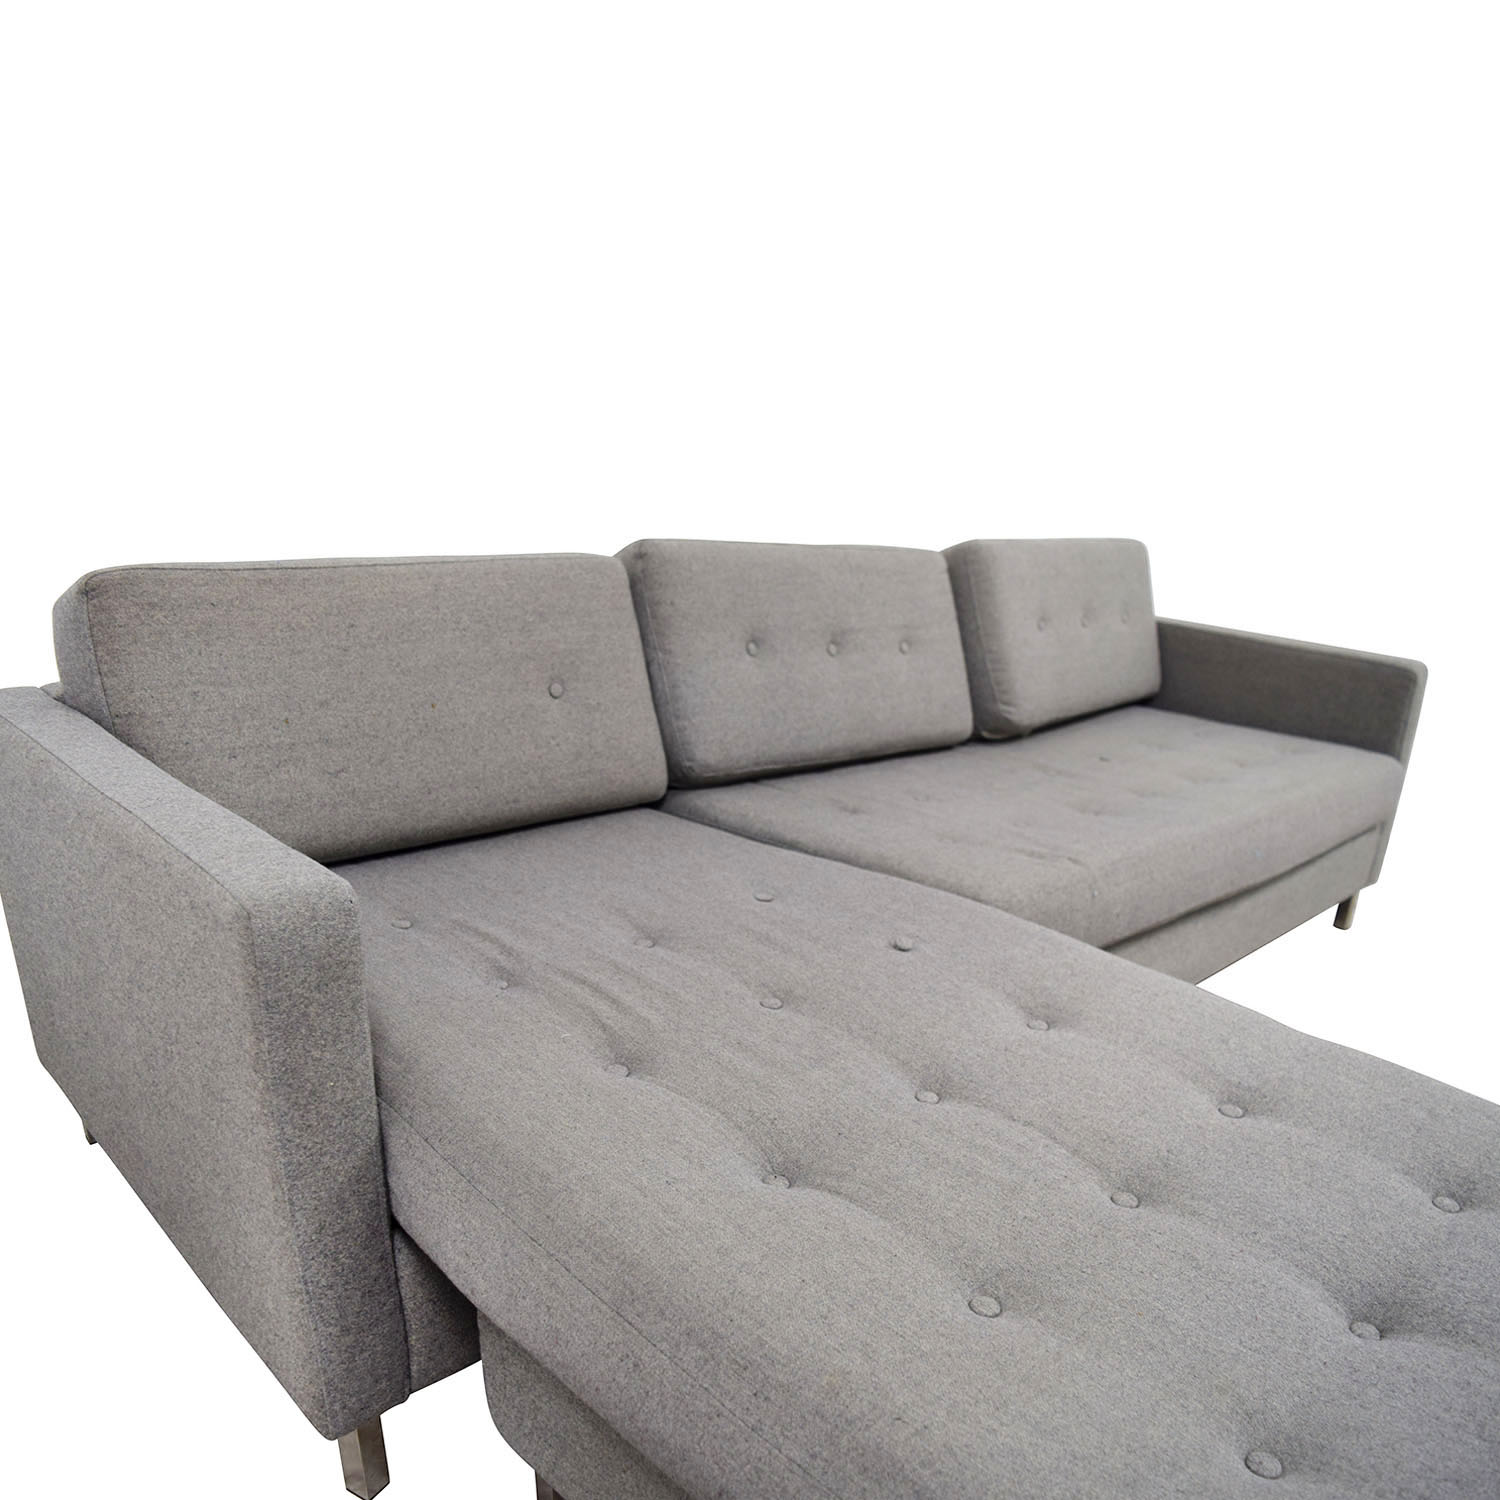 84 OFF  CB2 CB2 Grey Tufted Chaise Sectional  Sofas